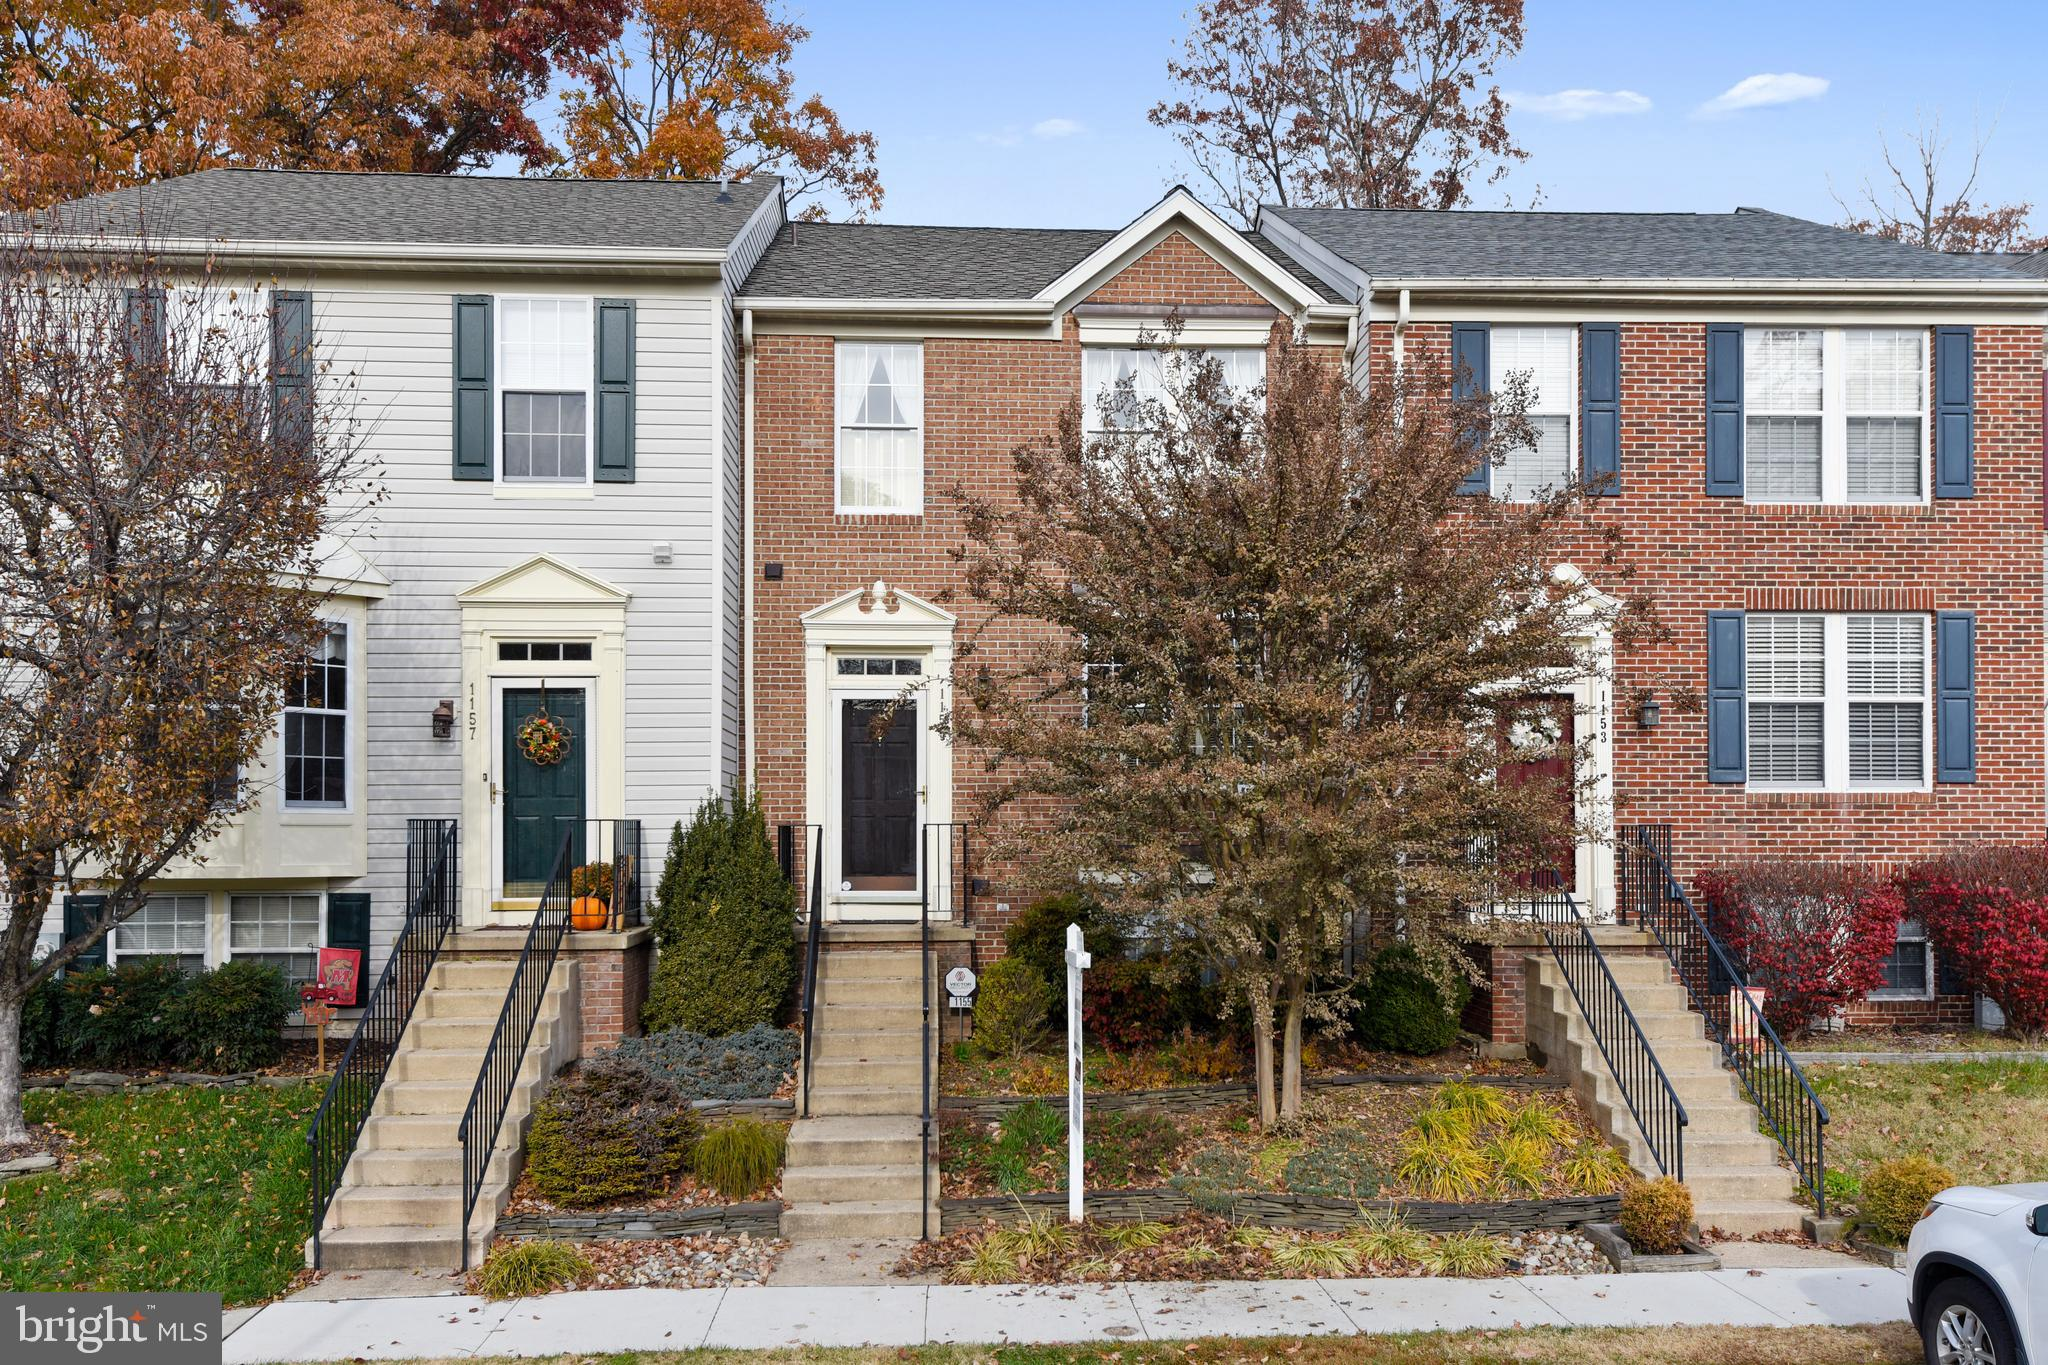 1155 DOUBLE CHESTNUT COURT, CHESTNUT HILL COVE, MD 21226